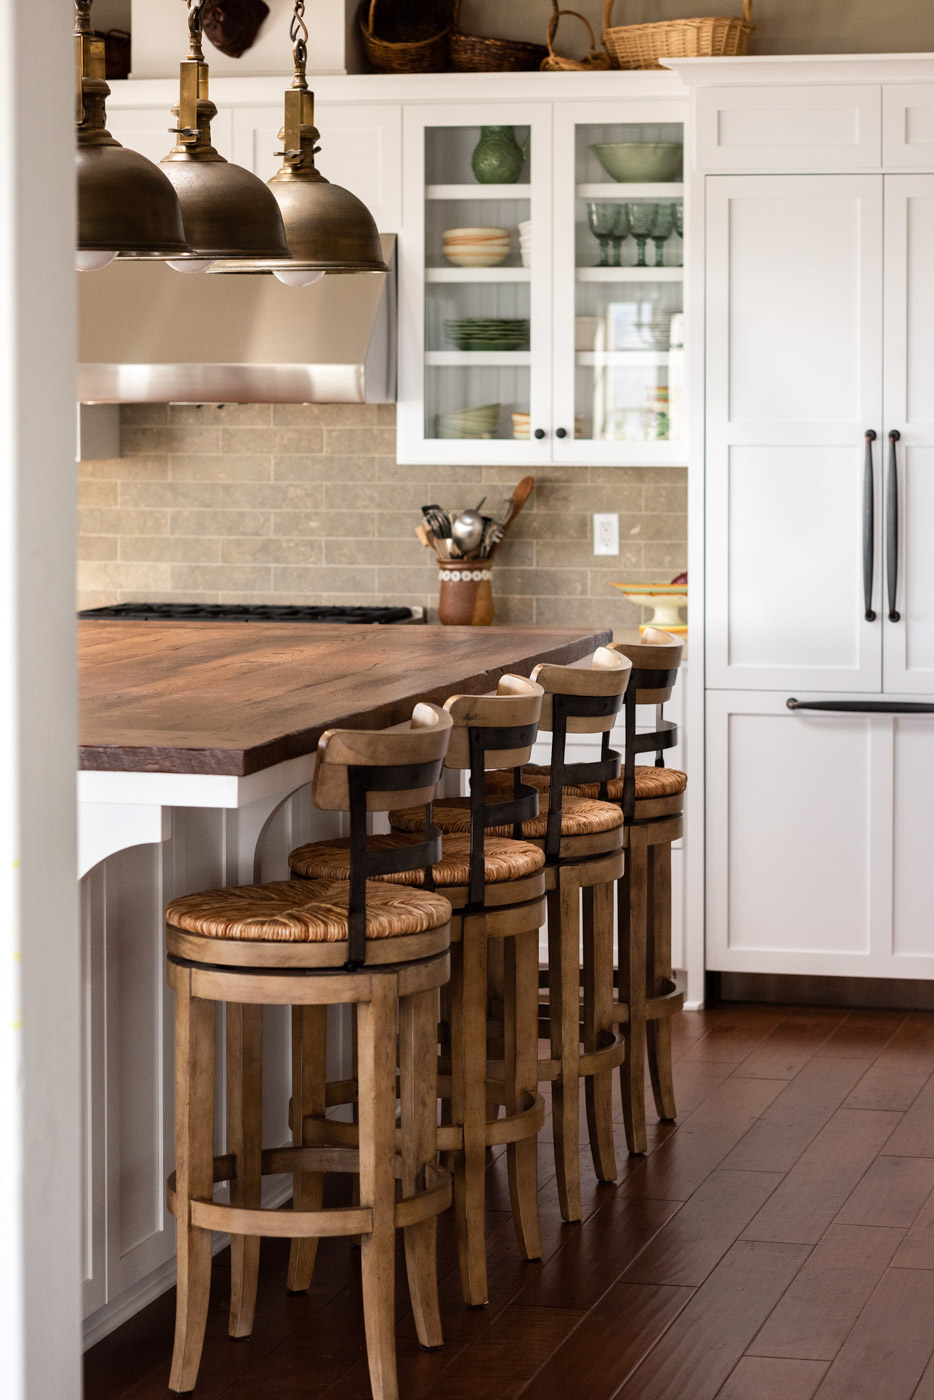 Coastal Craftsman kitchen with custom white painted shaker cabinets and island bar seating